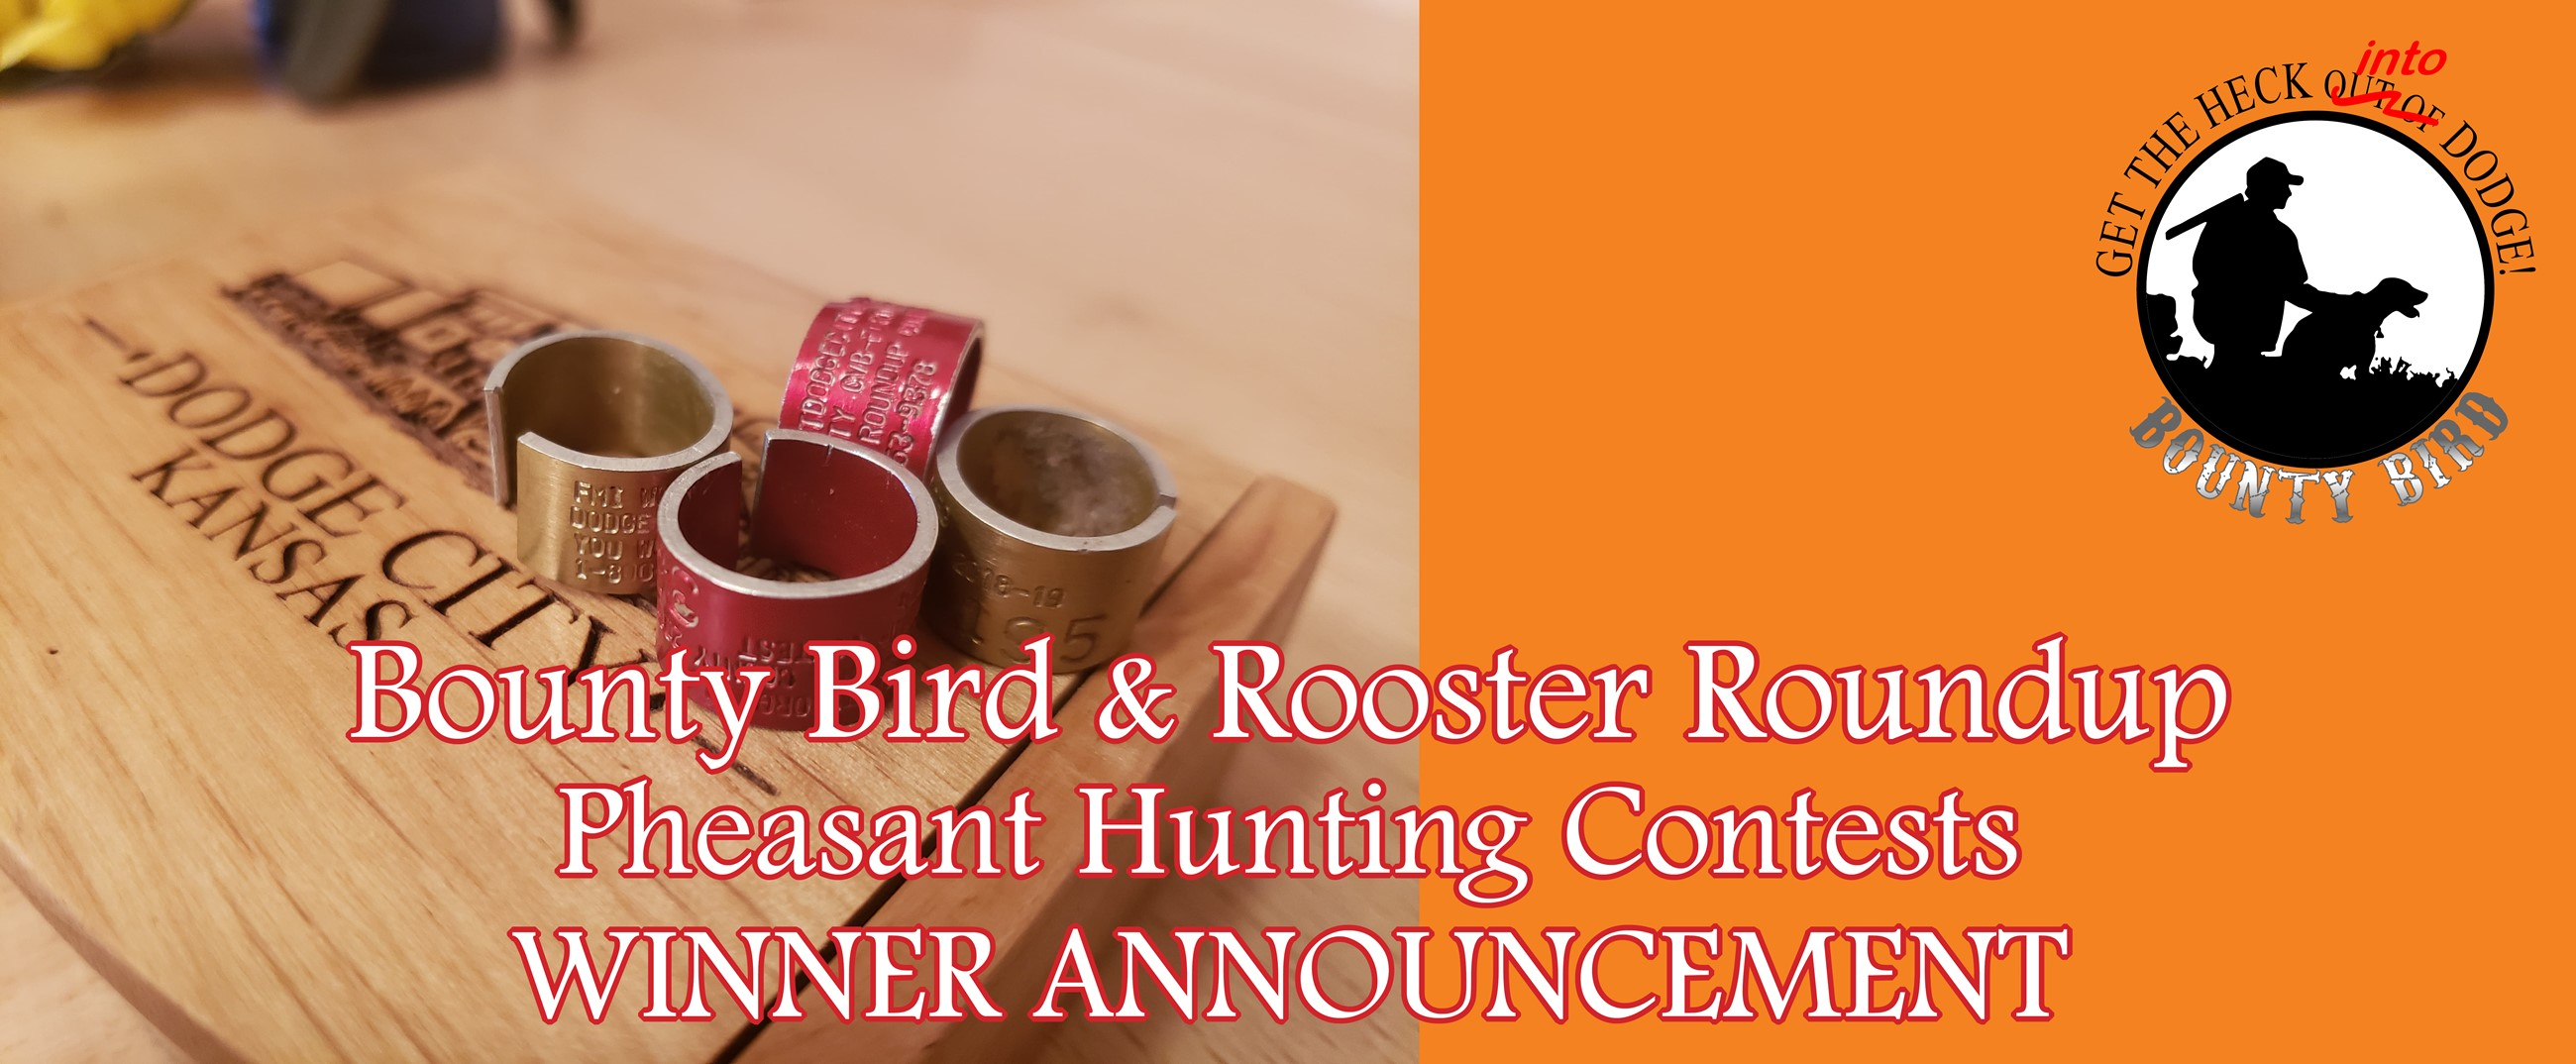 2018-2019 Hunting Contest Winner Announcement